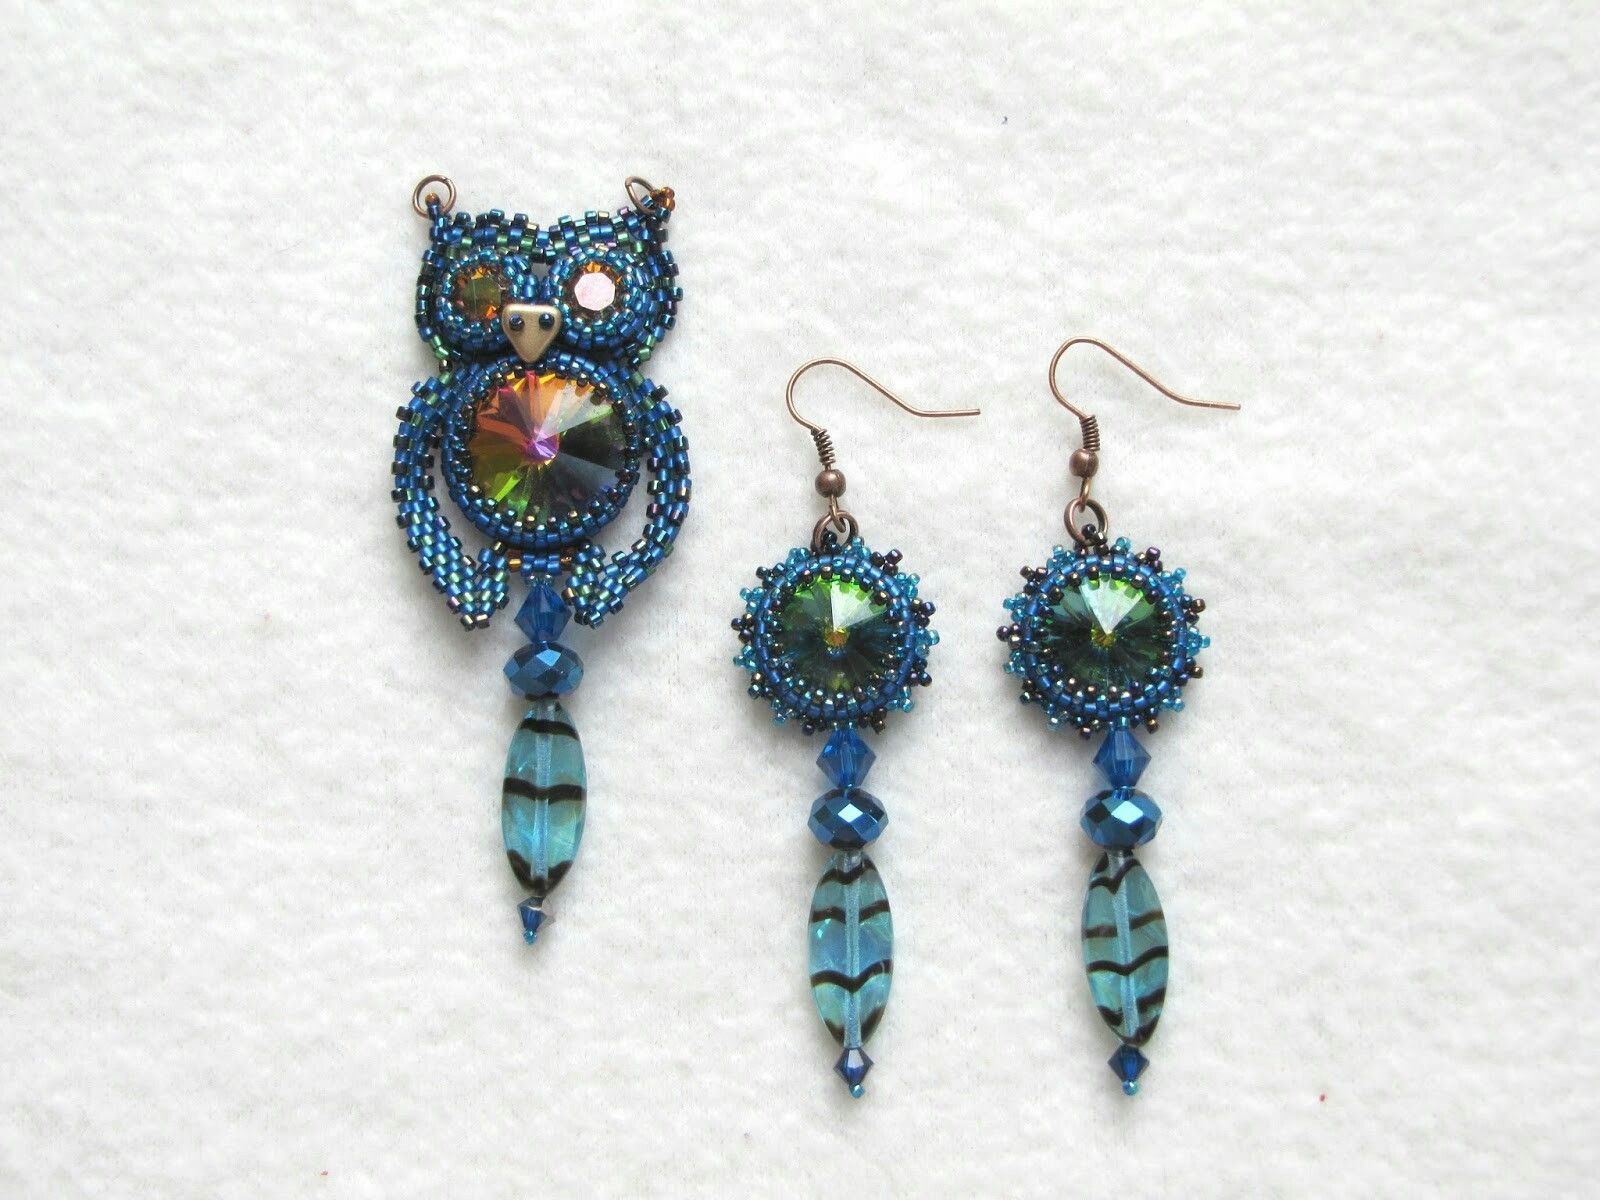 Pin by Deb springer on beadlng | Pinterest | Beads, Beaded animals ...